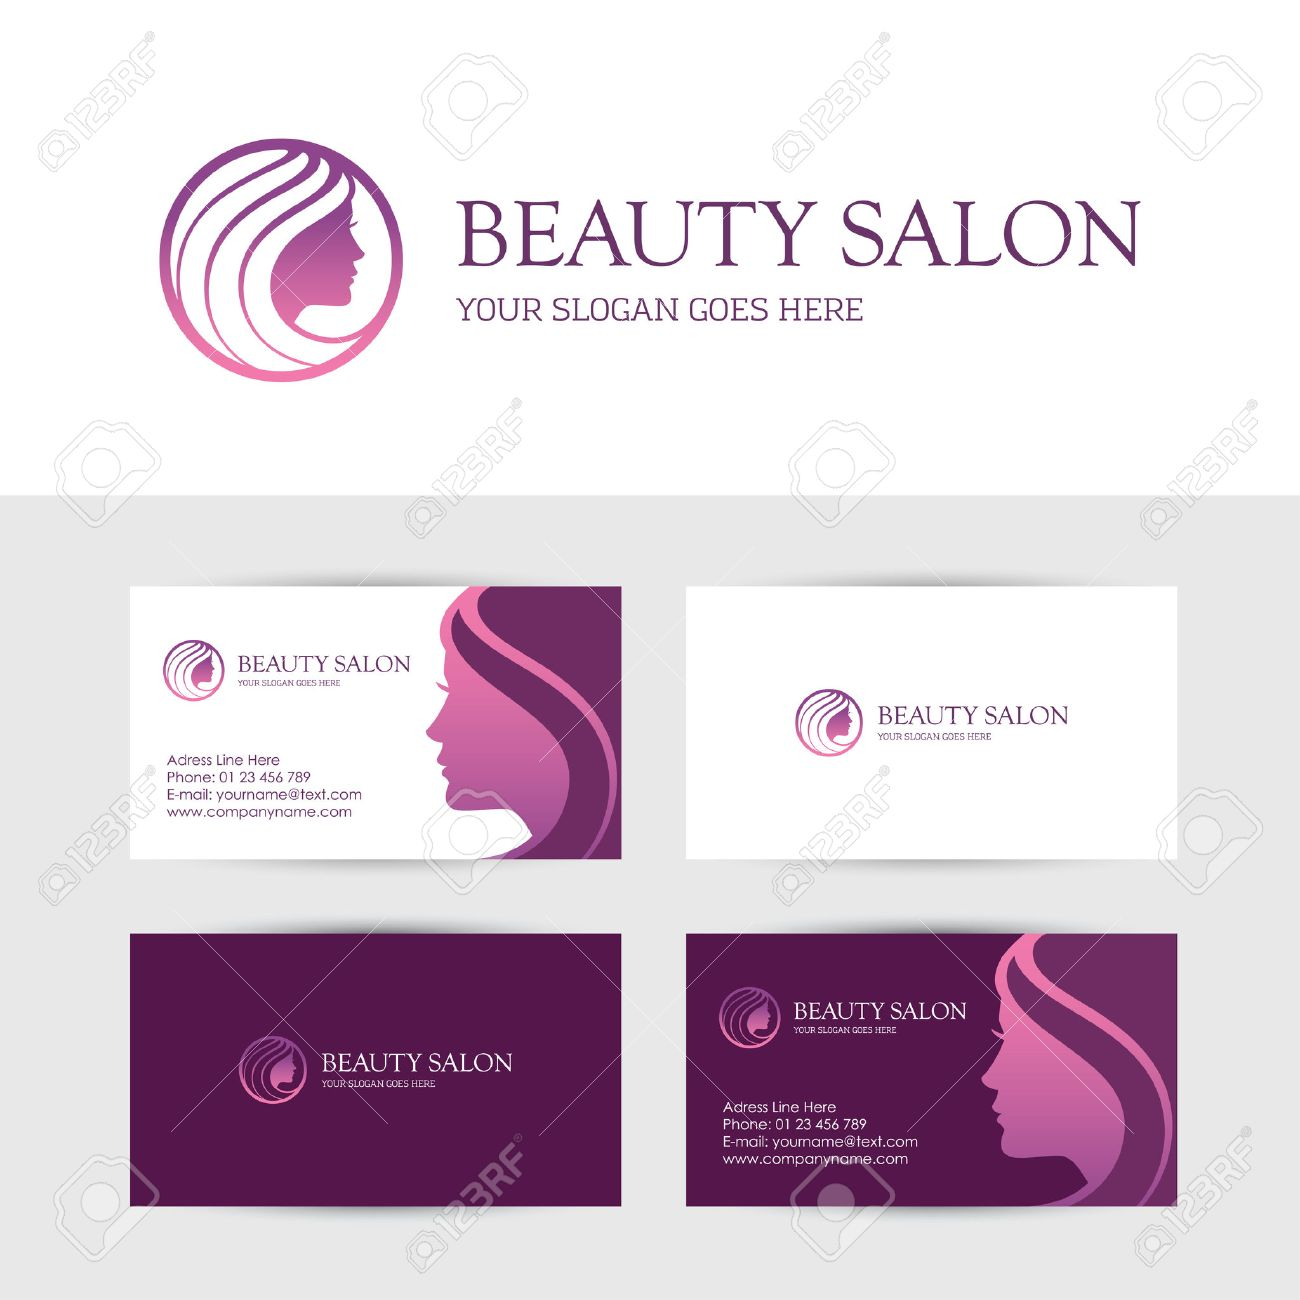 Business card design template for beauty or hair salon spa business card design template for beauty or hair salon spa cosmetics makeup wajeb